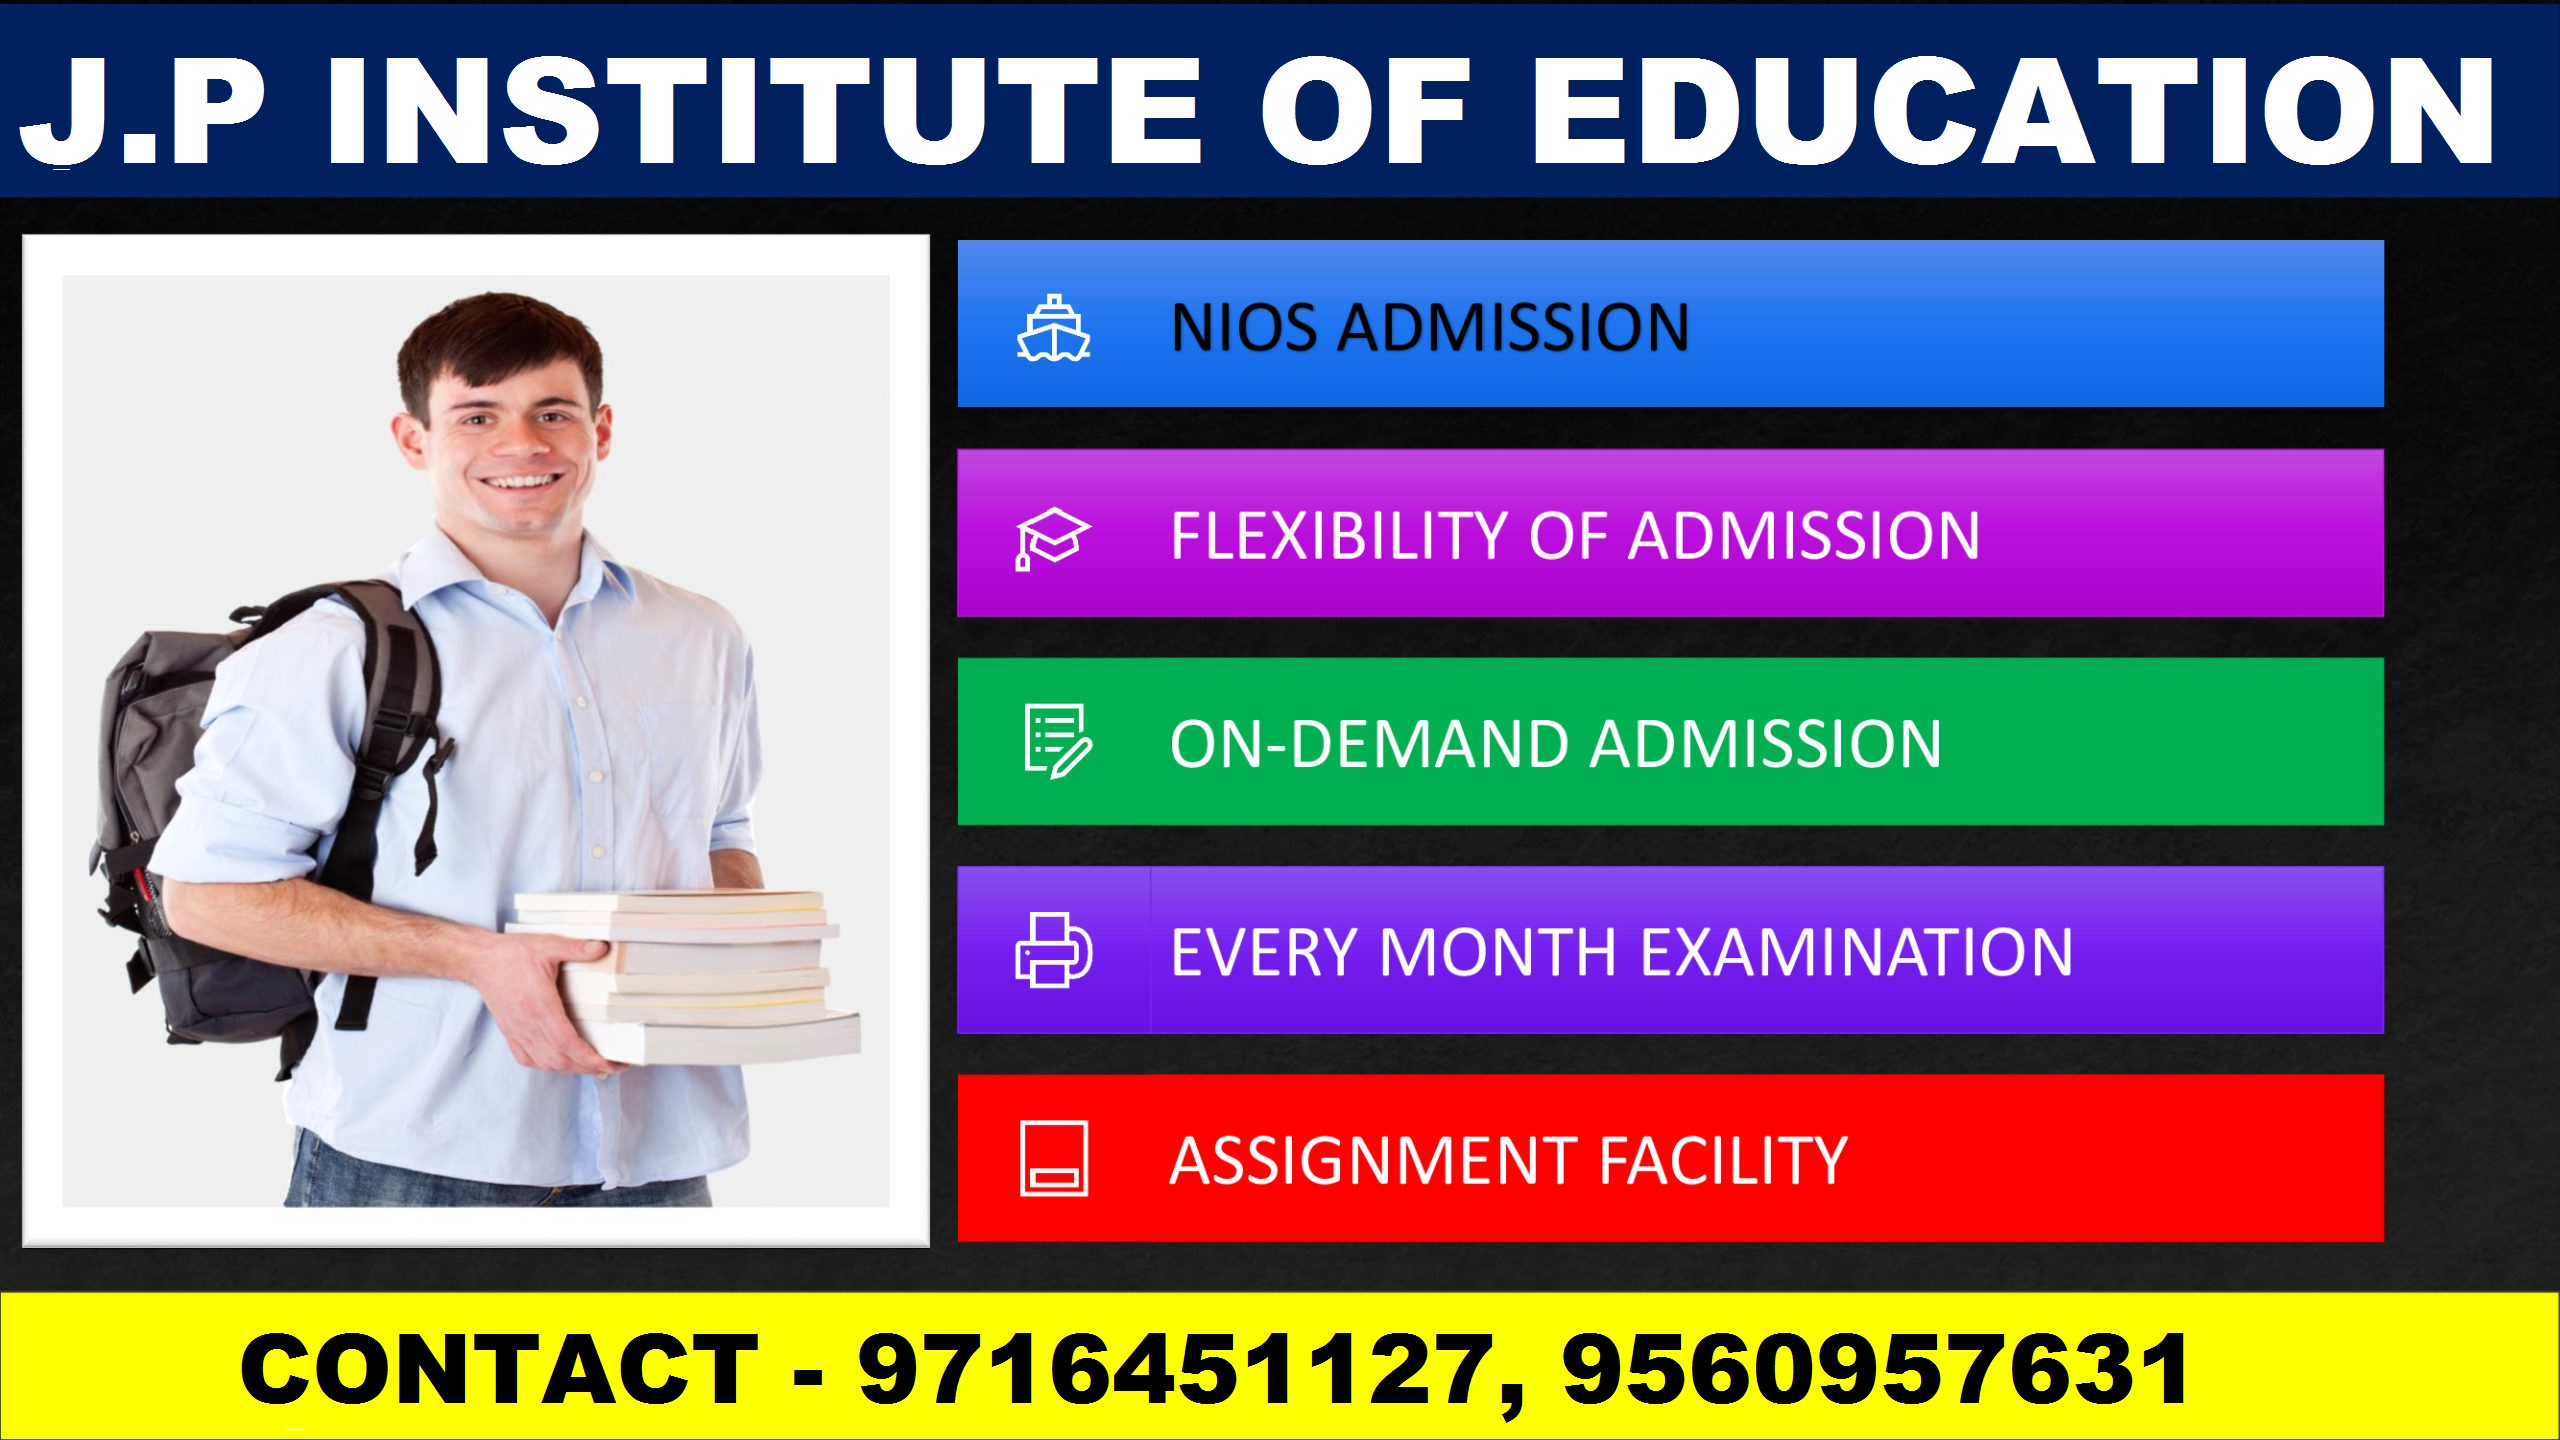 NIOS 2022 APRIL ADMISSION